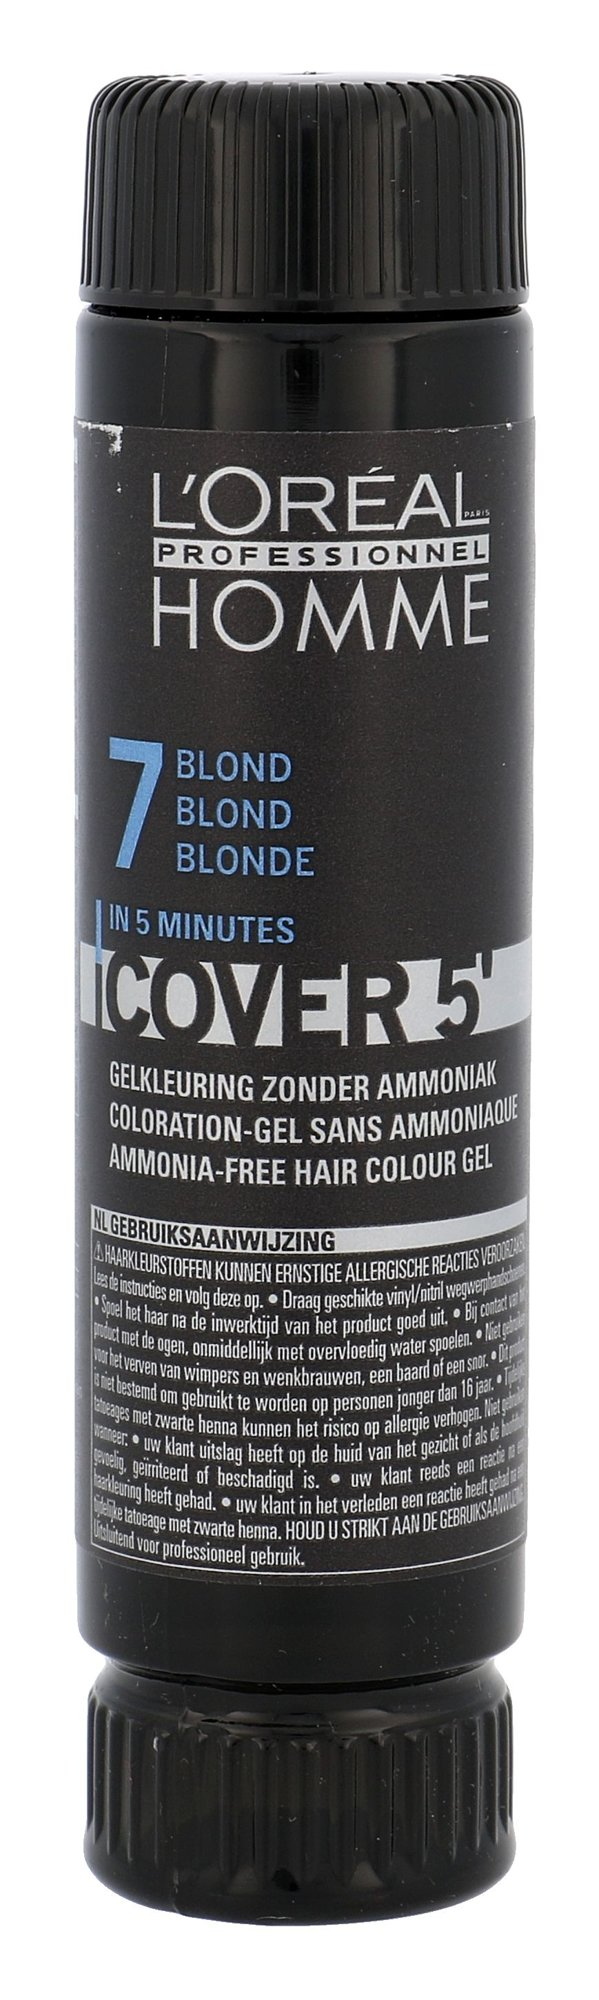 L´Oréal Professionnel Homme Cosmetic 3x50ml 7 Medium Blond